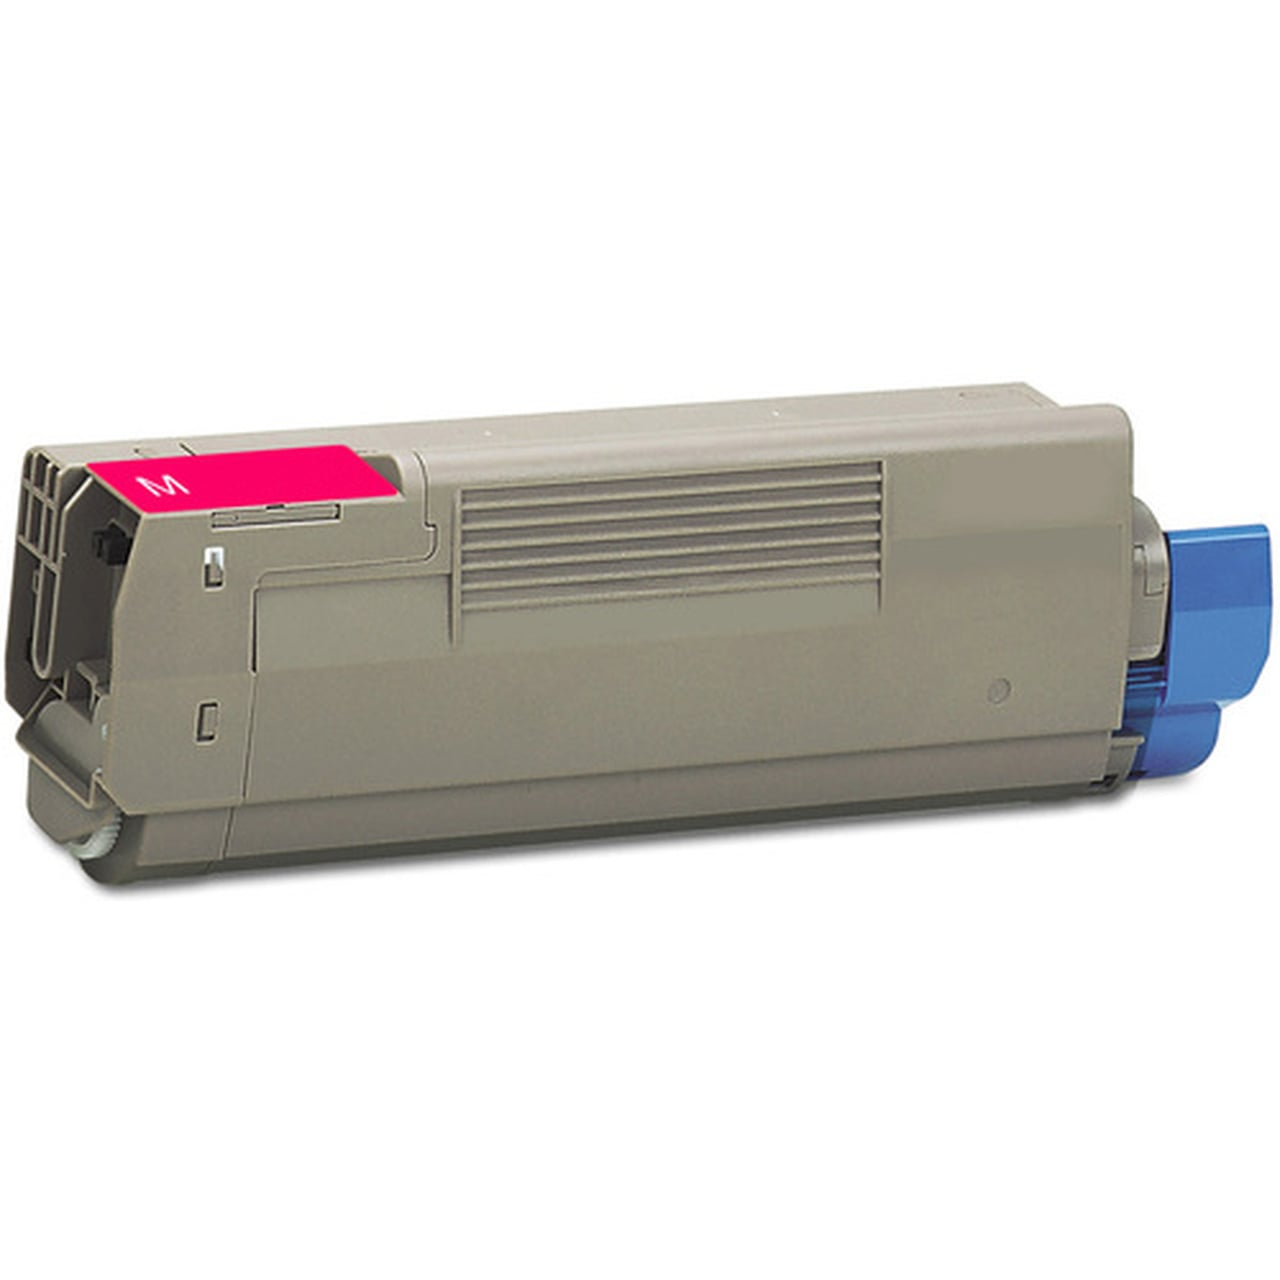 43866102 Toner Cartridge - Okidata Remanufactured (Magenta)